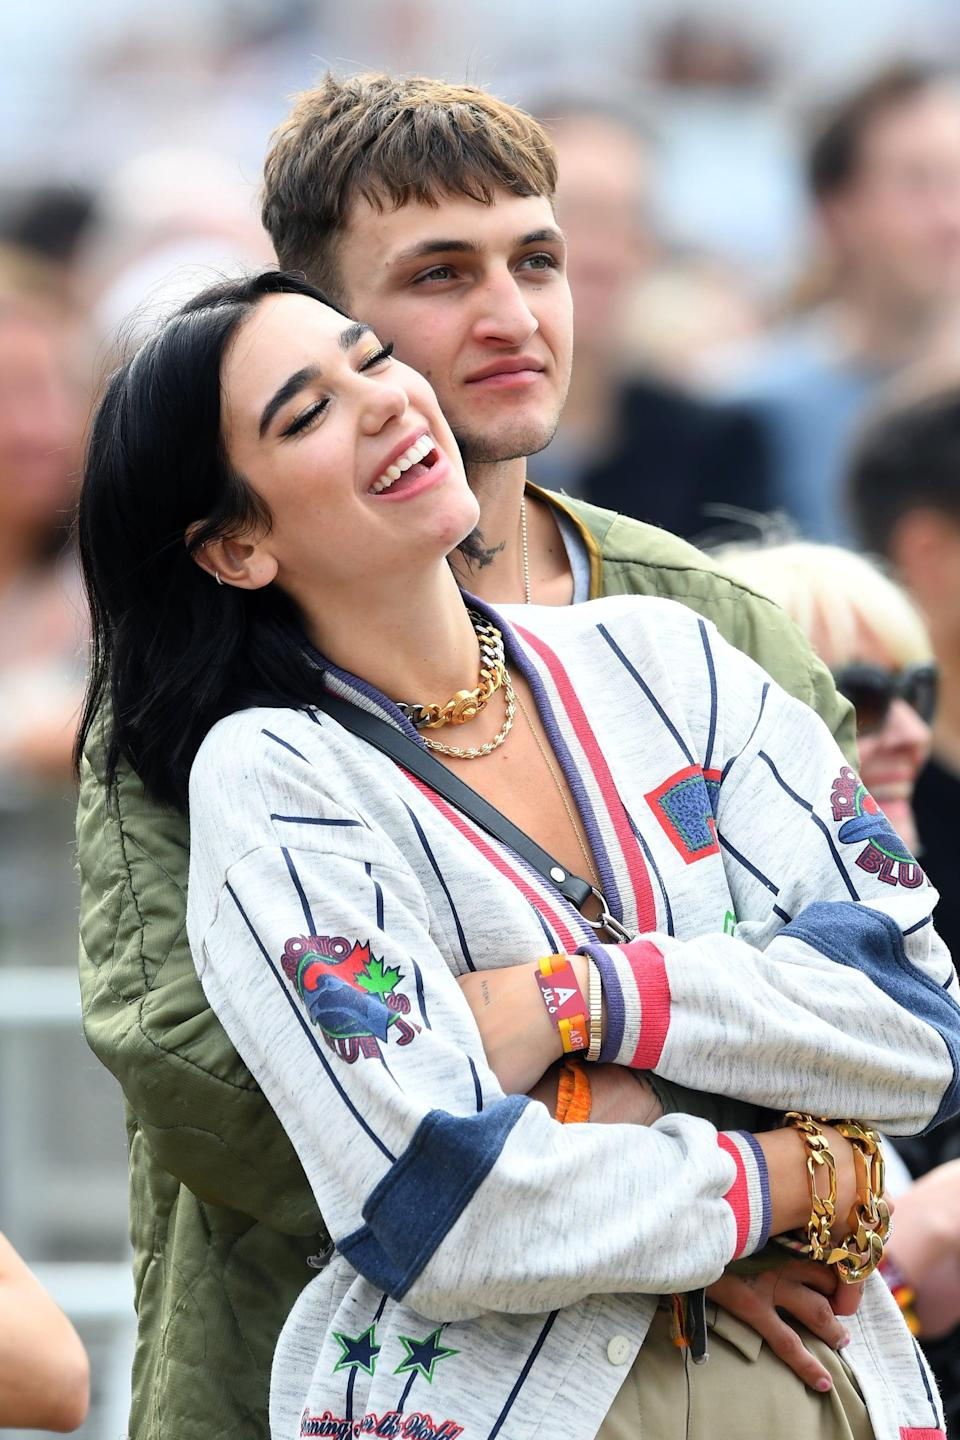 """<p>Whispers about whether or not Dua and Anwar were an item began circling in June 2019, but it wasn't until a month later at the 2019 British Summer Time Hyde Park music festival we got visual proof that <a href=""""https://www.popsugar.com/celebrity/Dua-Lipa-Anwar-Hadid-Dating-46351233"""" class=""""link rapid-noclick-resp"""" rel=""""nofollow noopener"""" target=""""_blank"""" data-ylk=""""slk:the two are definitely more than friends"""">the two are definitely more than friends</a>. That May, Dua had just split from longtime boyfriend Isaac Carew and<a href=""""https://www.popsugar.com/celebrity/Kendall-Jenner-Anwar-Hadid-Kissing-CFDA-Awards-Party-44907172"""" class=""""link rapid-noclick-resp"""" rel=""""nofollow noopener"""" target=""""_blank"""" data-ylk=""""slk:Anwar had been linked to Kendall Jenner""""> Anwar had been linked to Kendall Jenner</a>, though both said there was nothing between them.</p> <p><br></p>"""